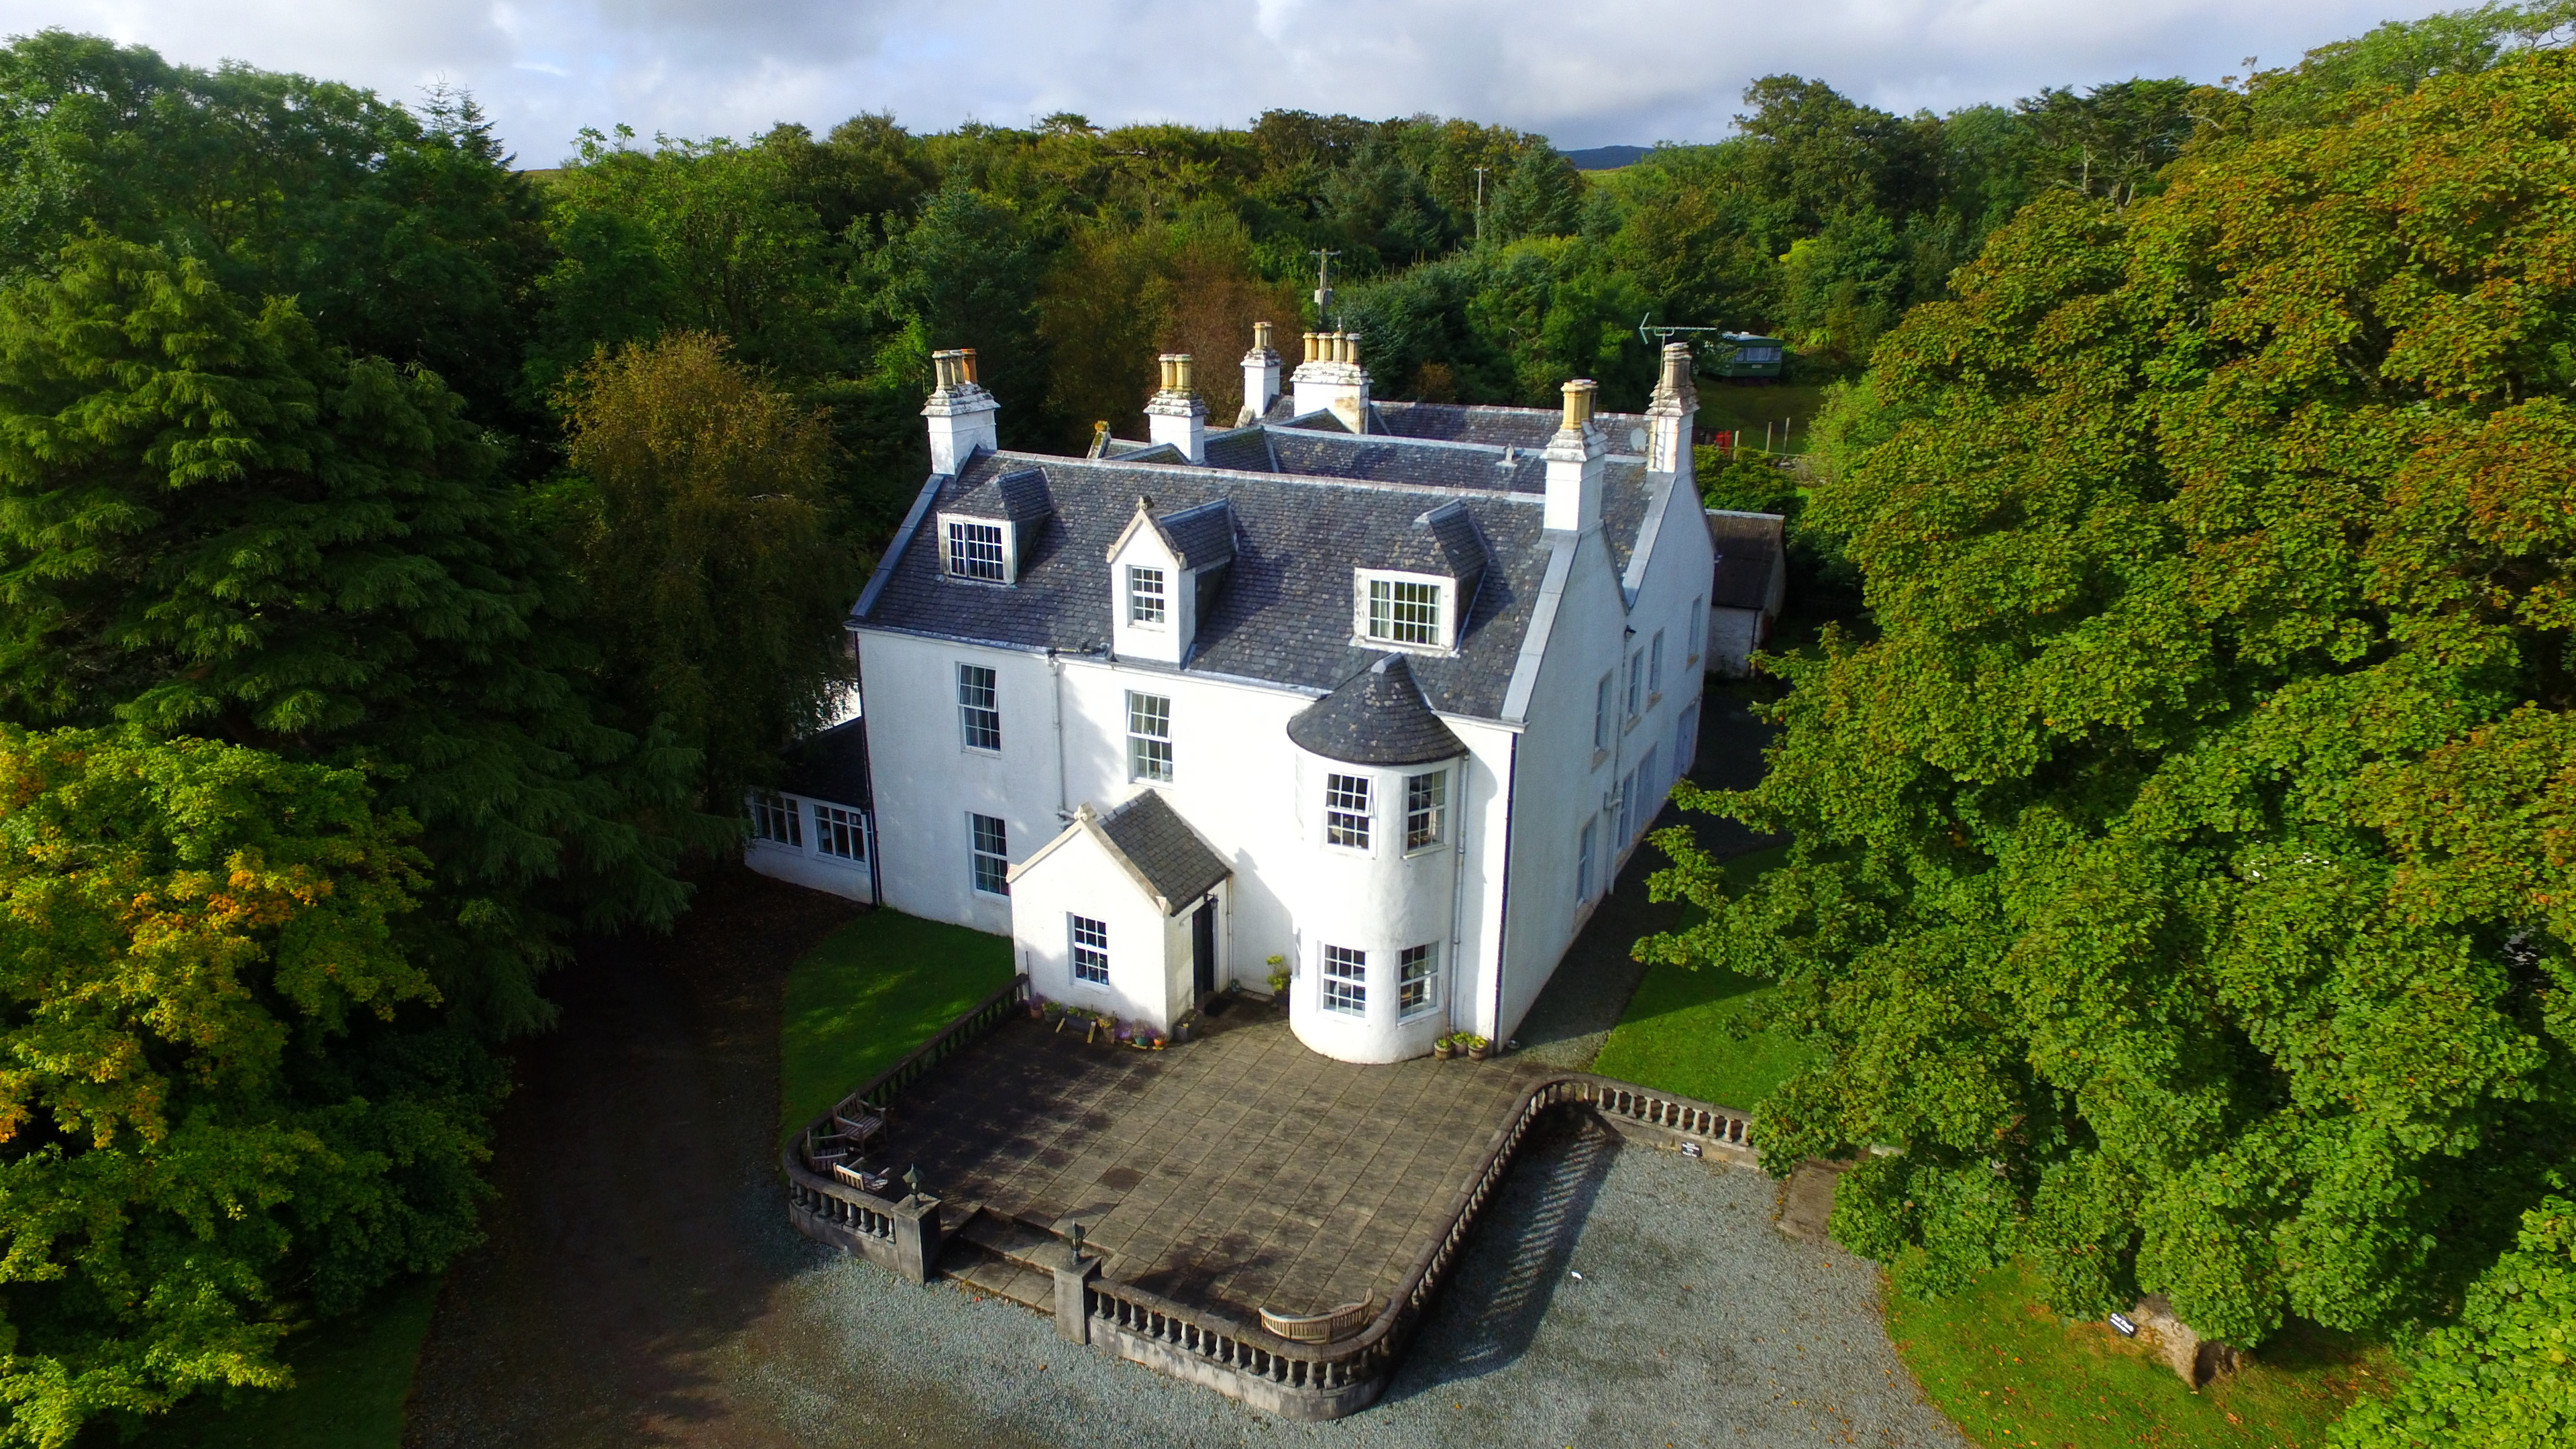 Greshornish House is on the market for offers over £725,000.